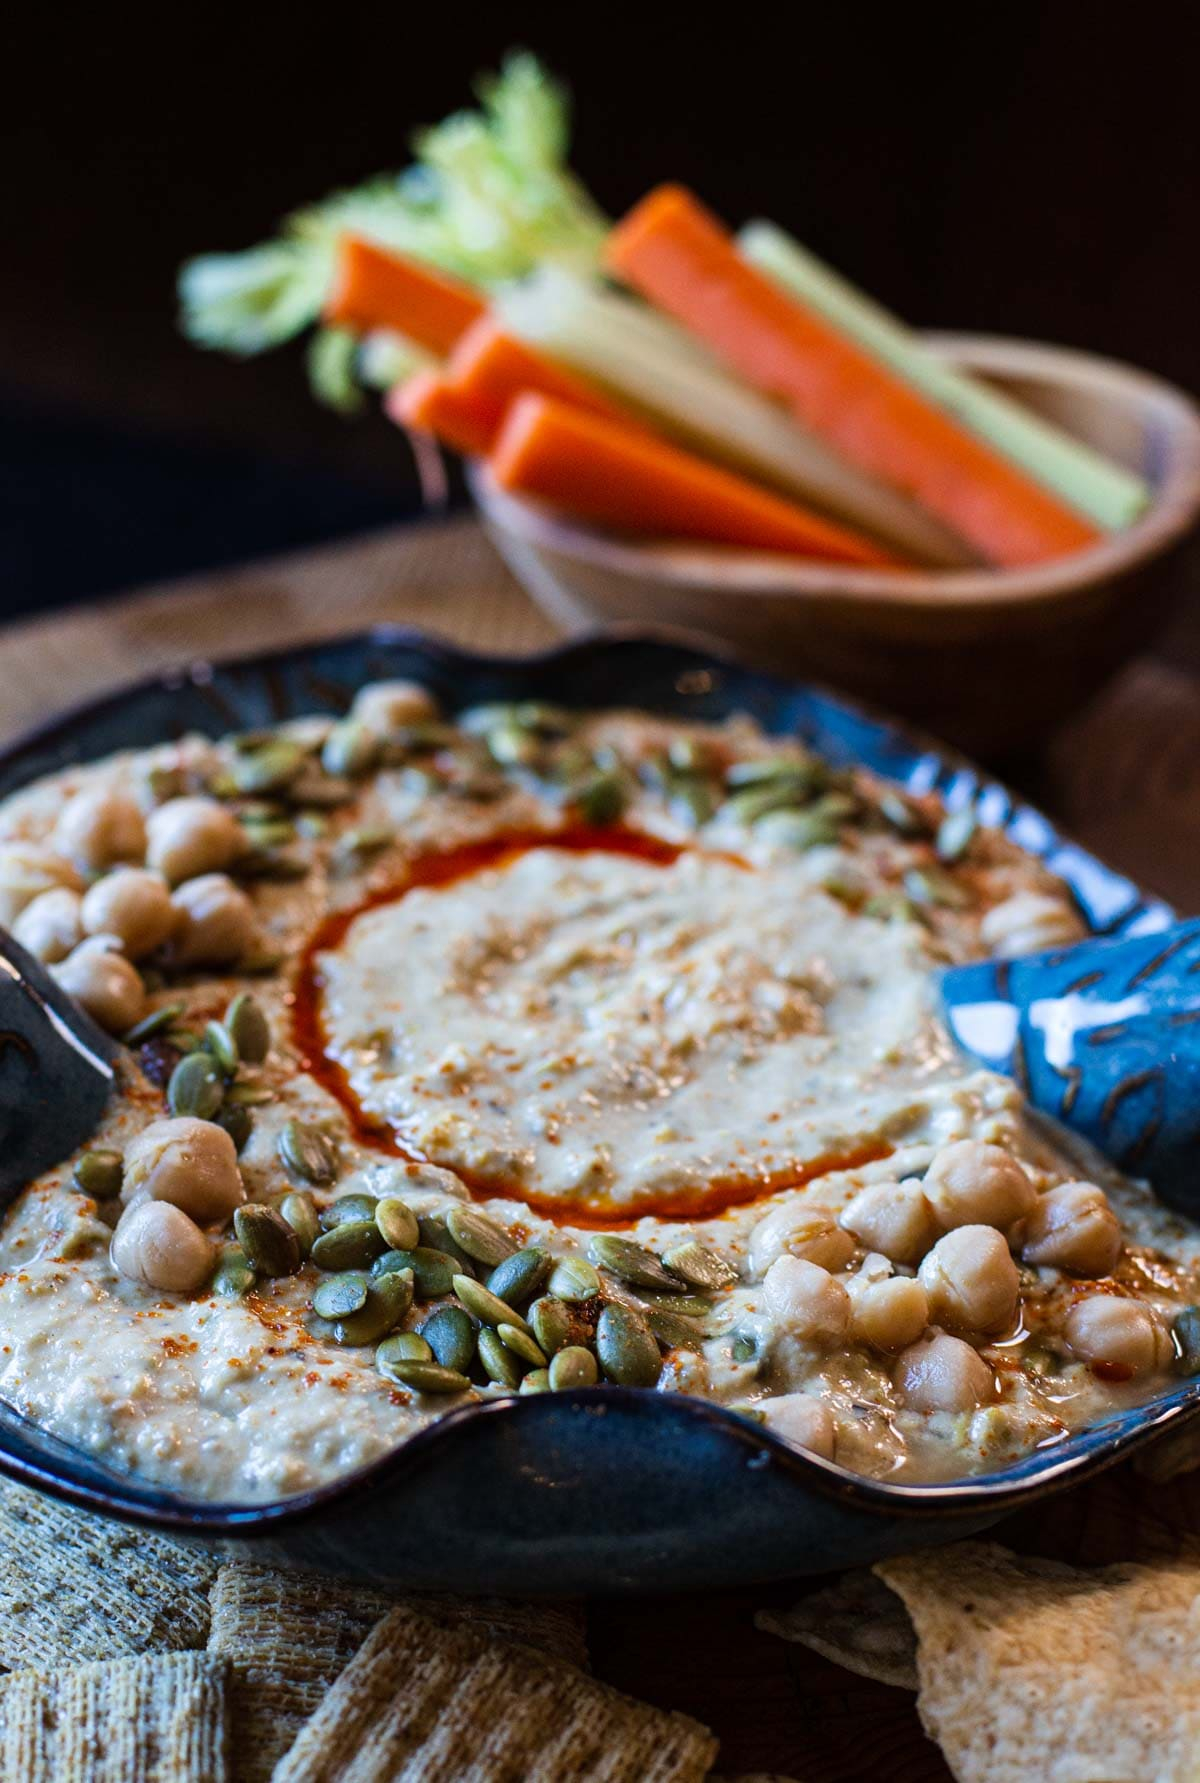 Spicy Hummus Recipe made with Hatch Green Chile Peppers